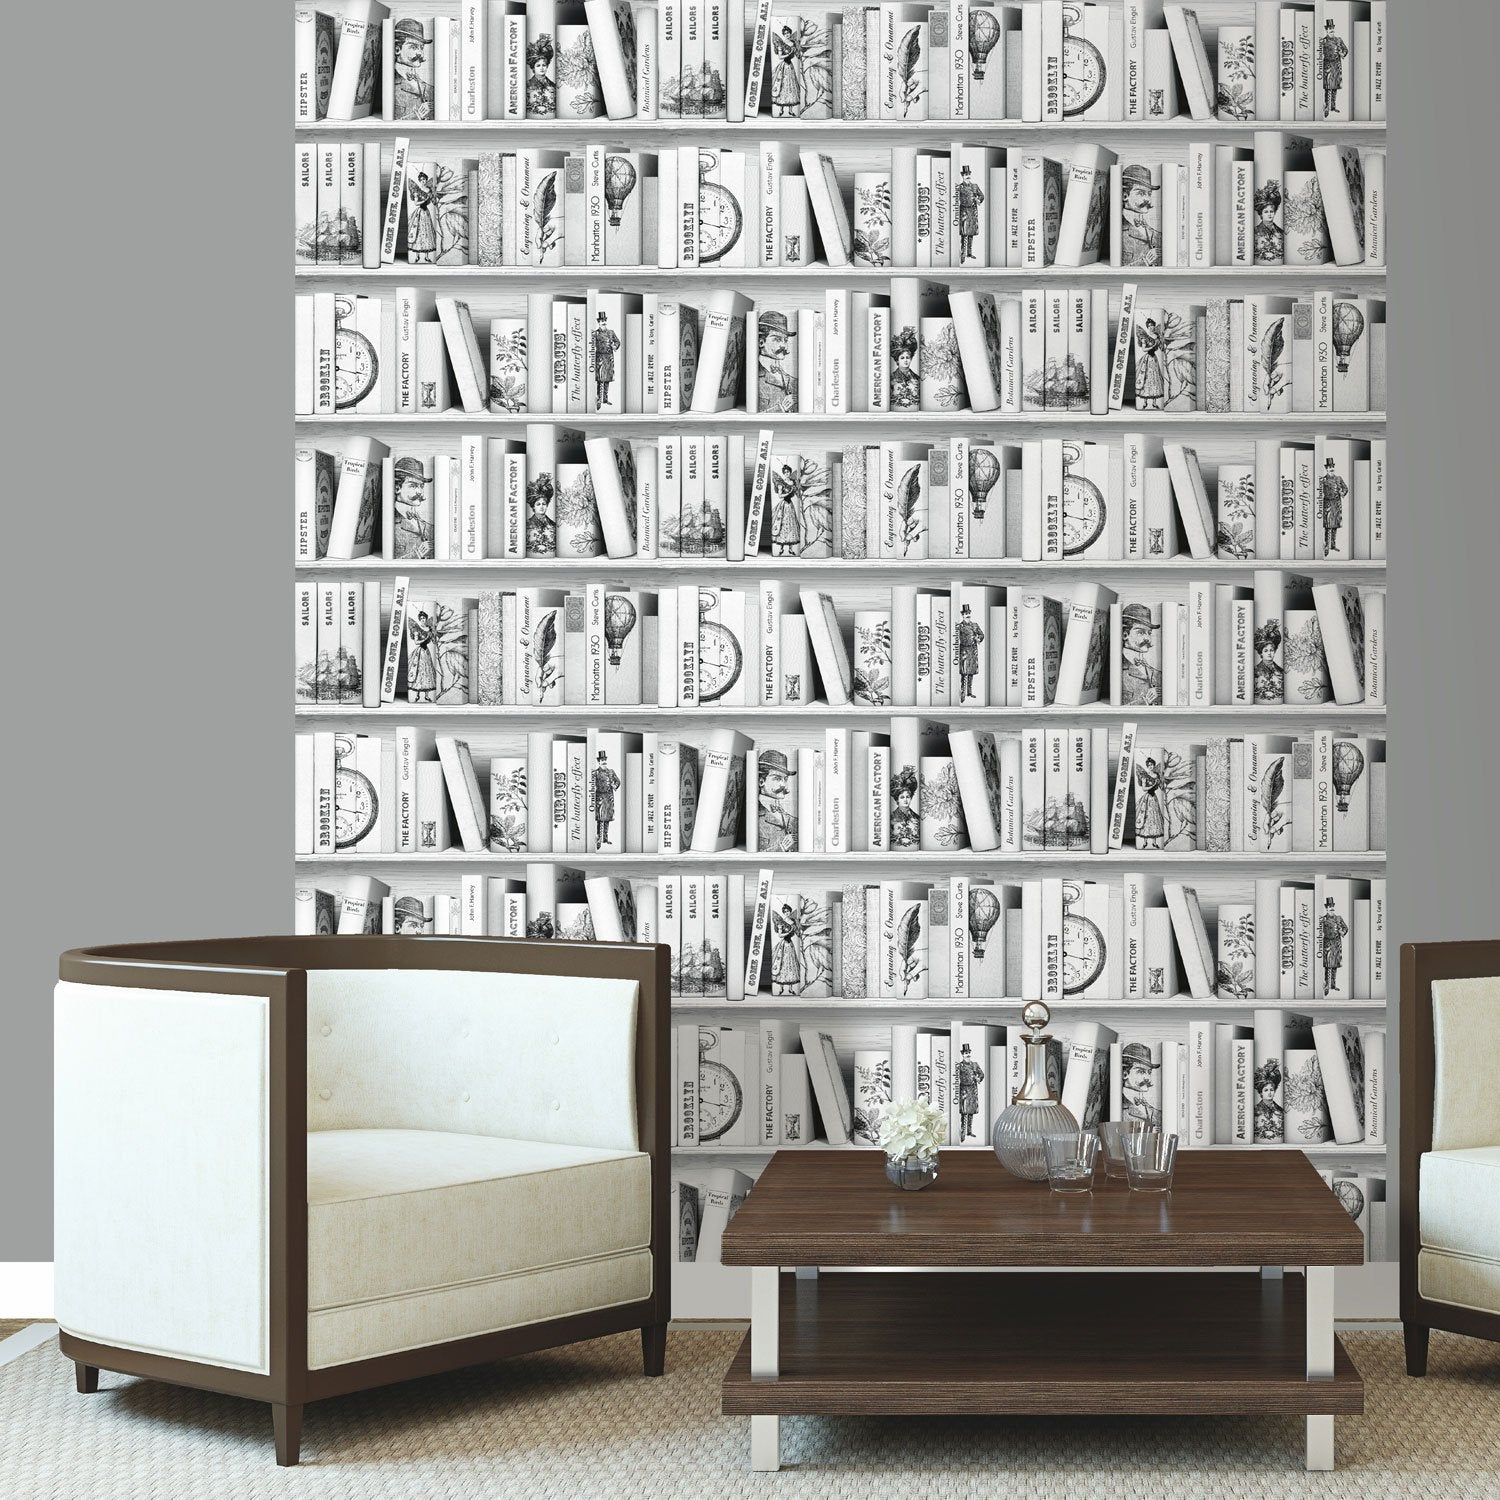 papier peint intiss biblioth que brooklyn leroy merlin. Black Bedroom Furniture Sets. Home Design Ideas